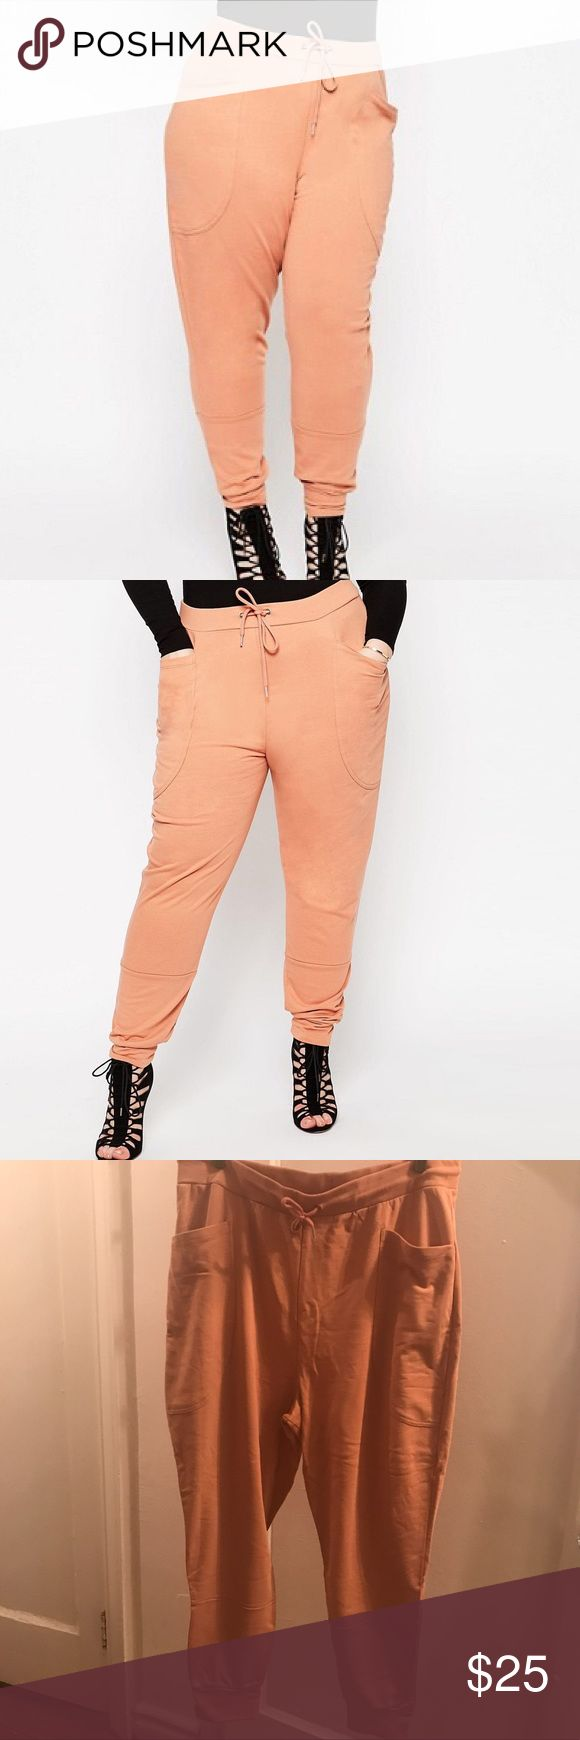 ASOS Curve Casual Harem Sweatpants Cute harem sweatpants can be dressed up or down! These are a peachy mauve (nude) color. 2 front pockets, 1 back pocket, banded hem, drawstring in waistband. 100% Cotton.  📦I ONLY SHIP MONDAY-THURSDAY📫 ASOS Curve Pants